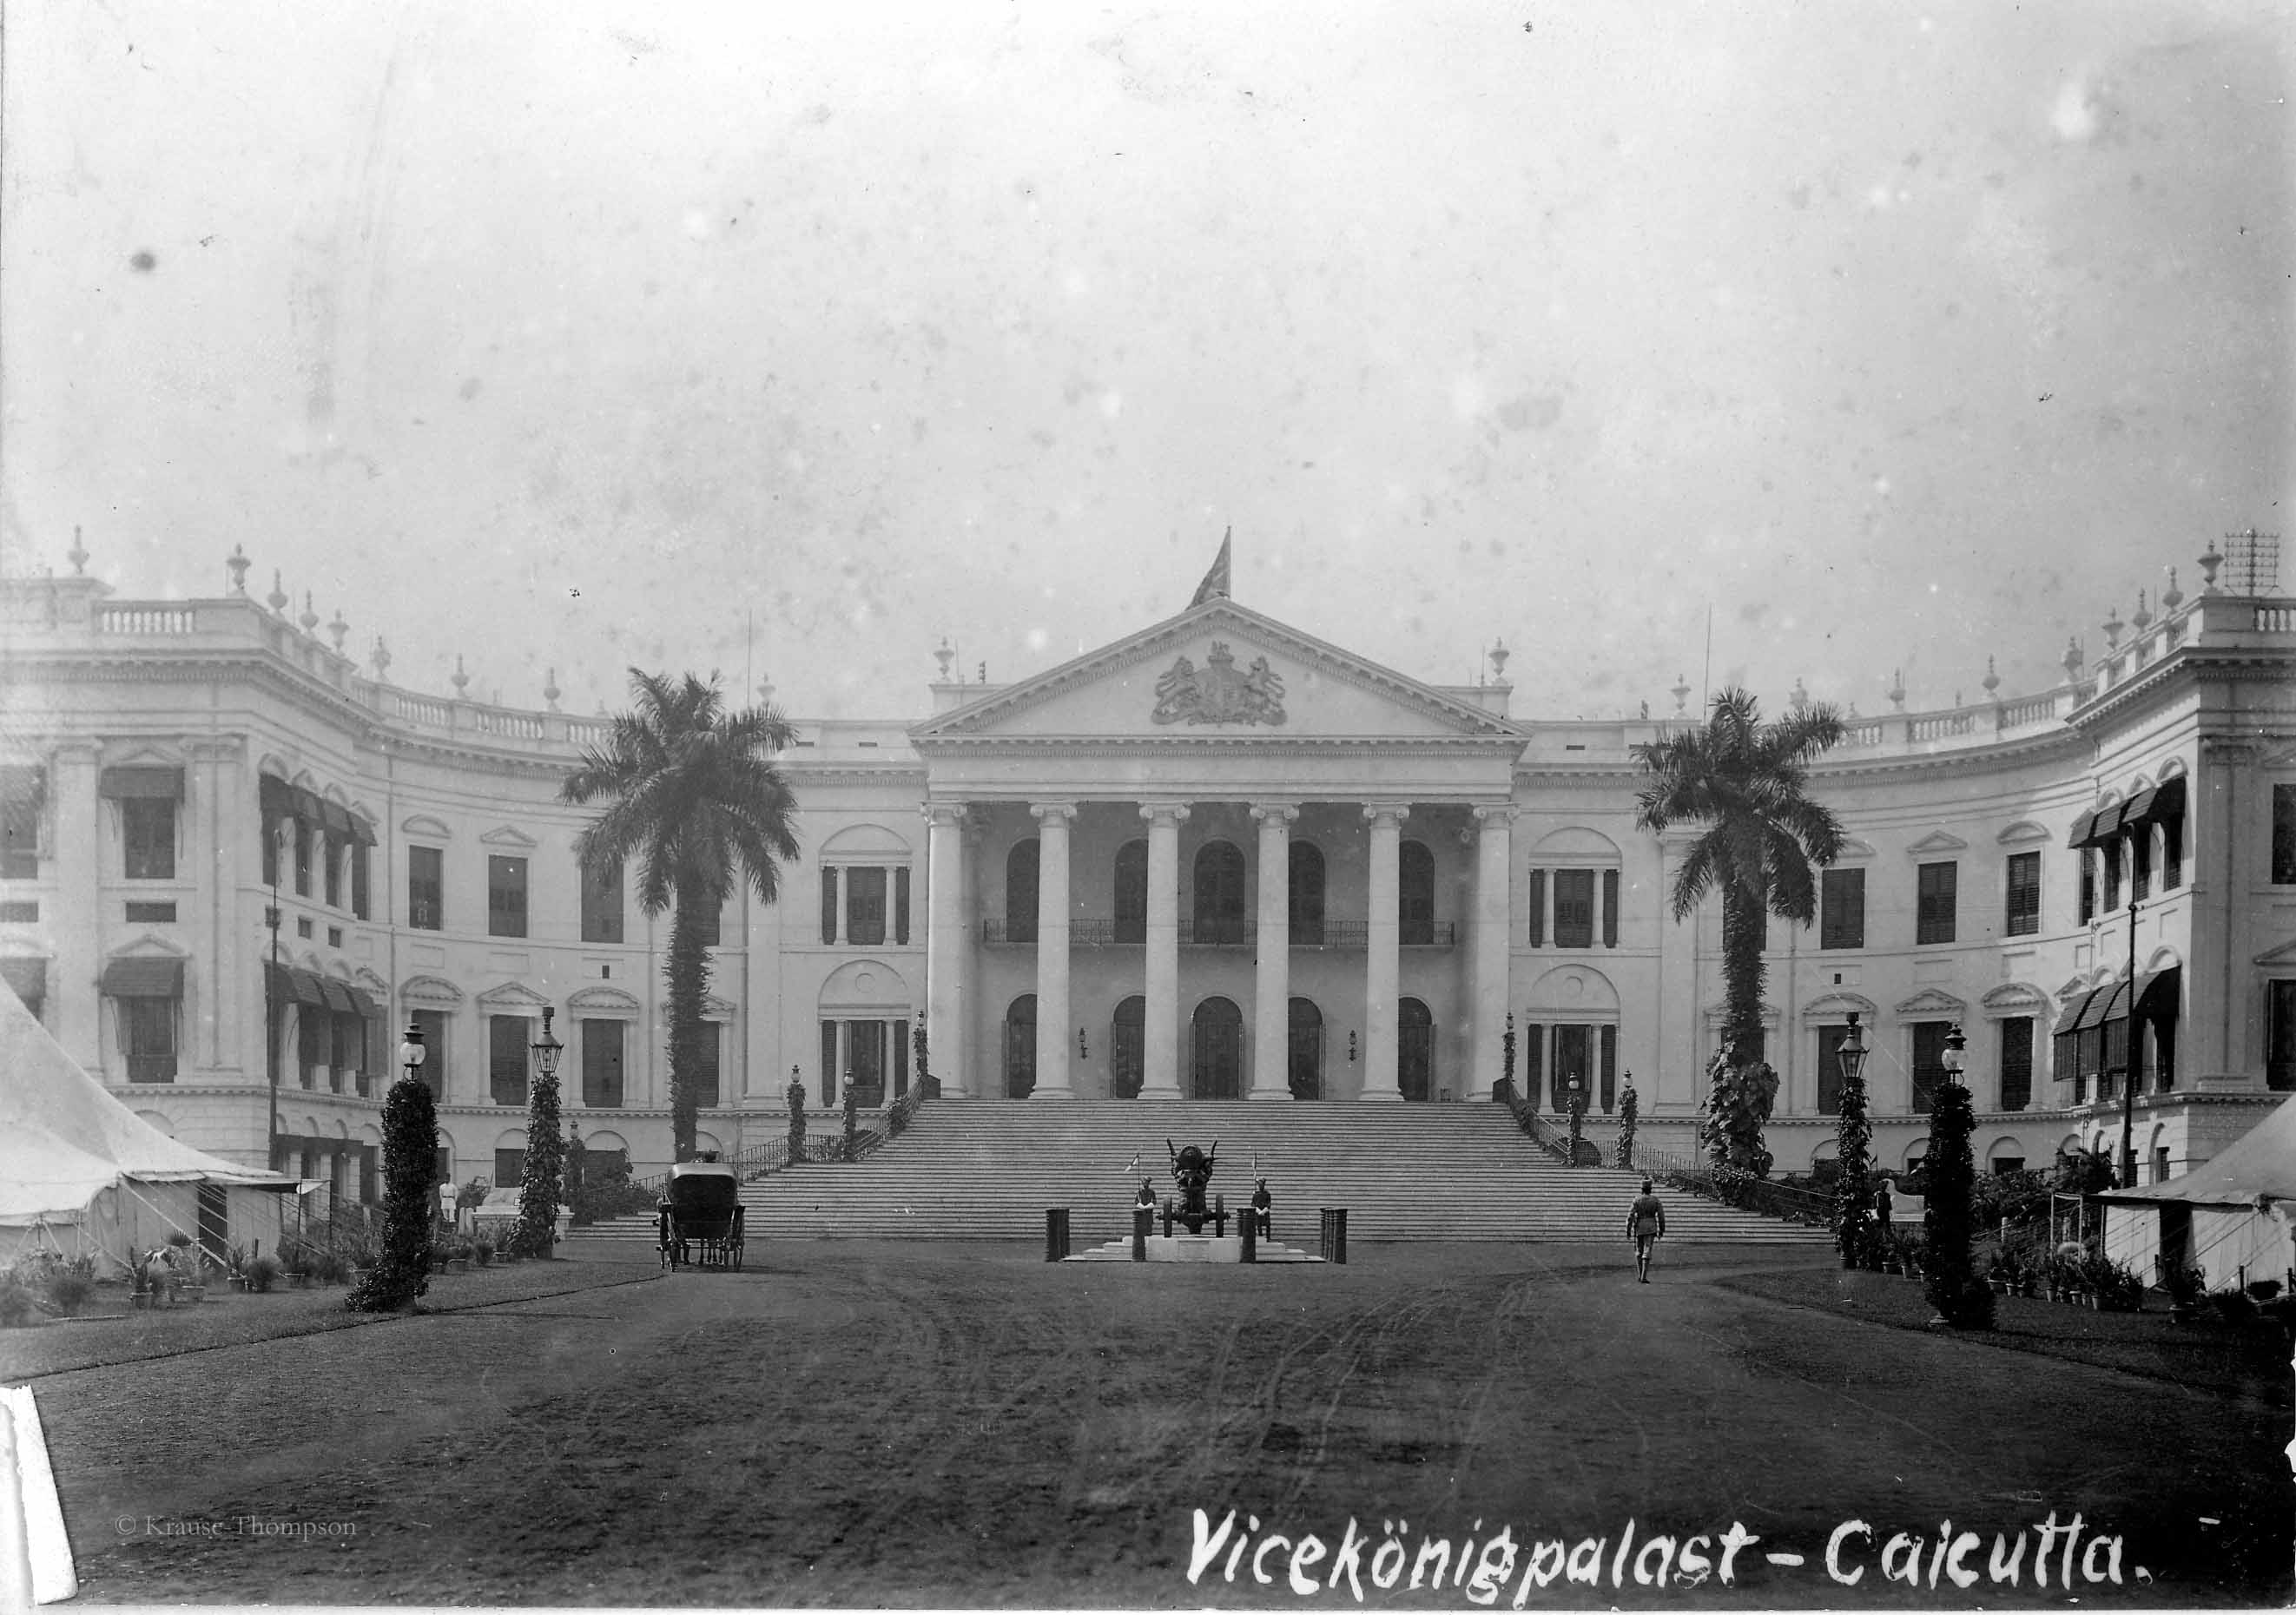 Palace of viceroy in Calcutta